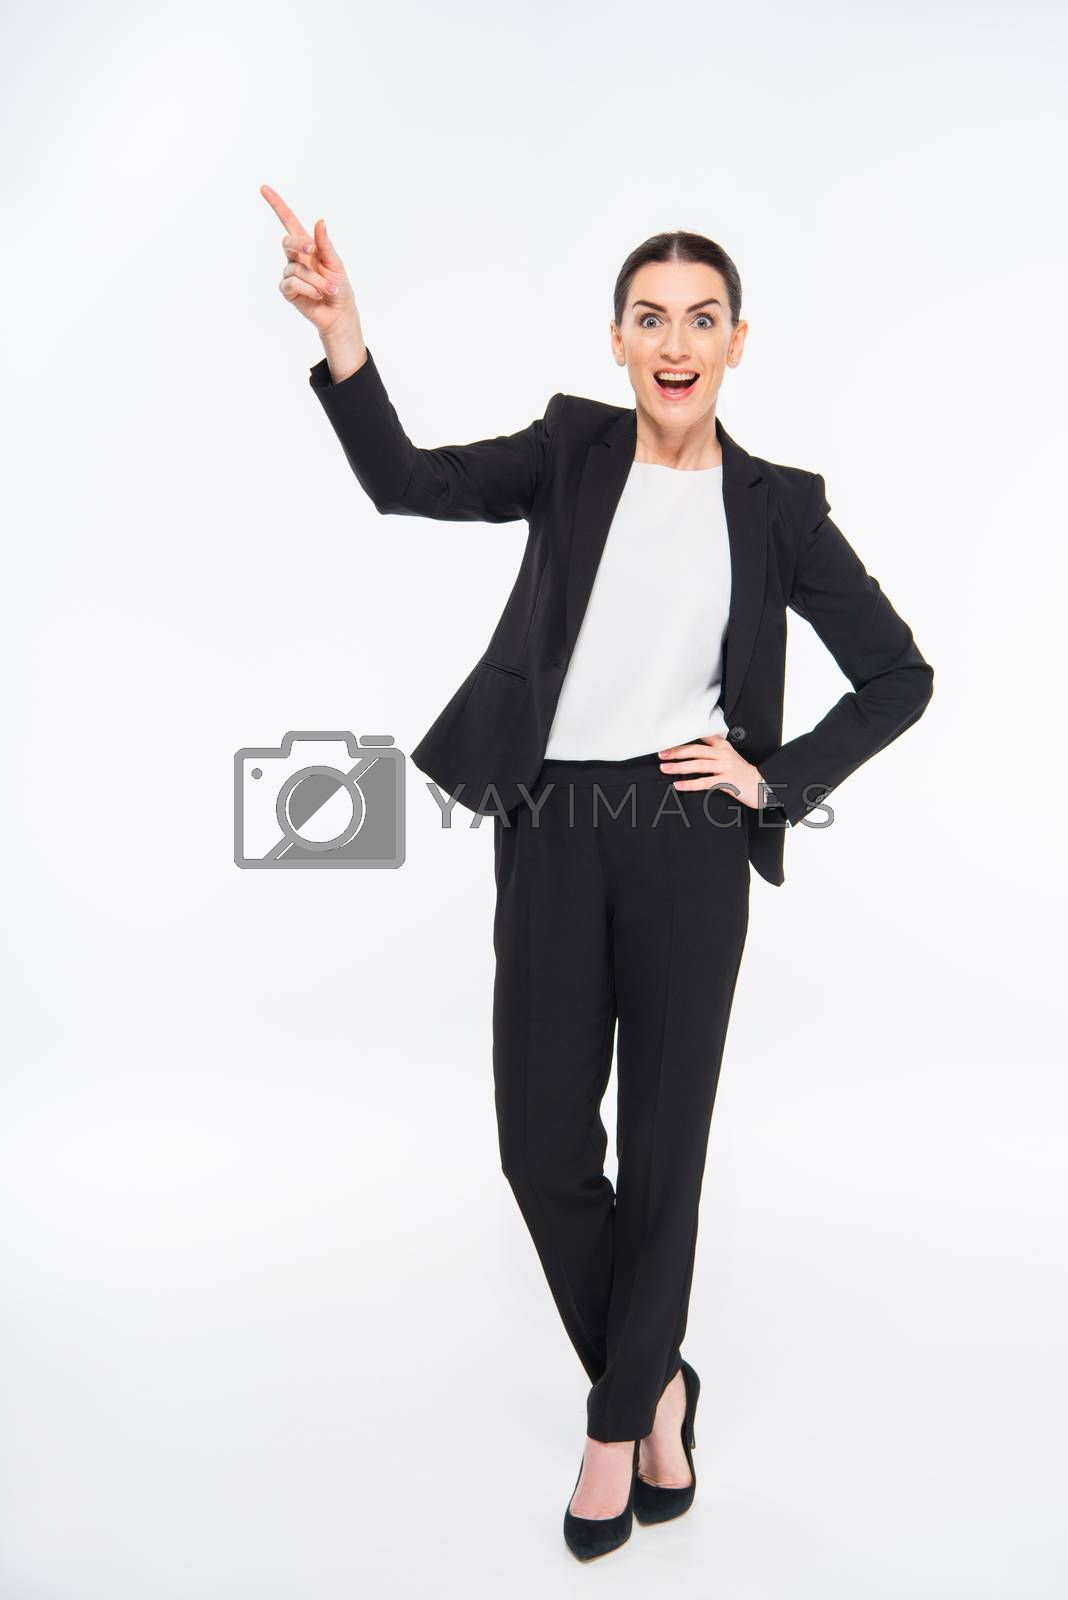 Royalty free image of Surprised businesswoman pointing by LightFieldStudios